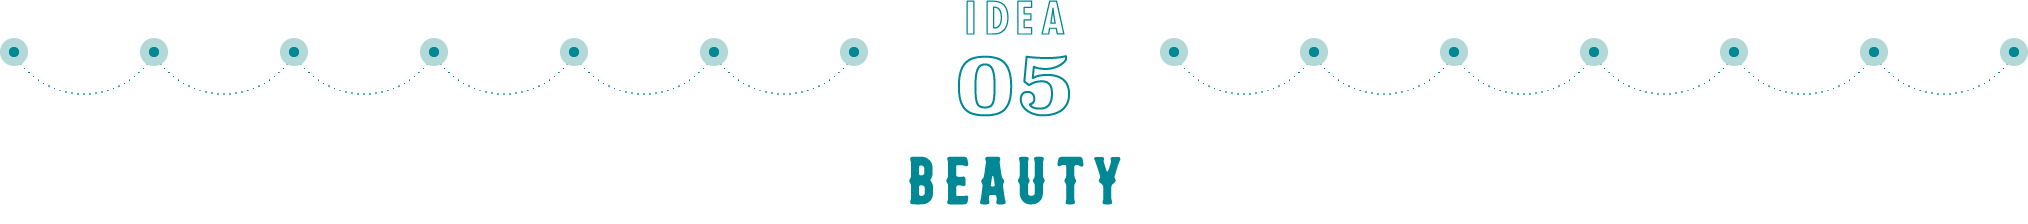 idea05 BEAUTY